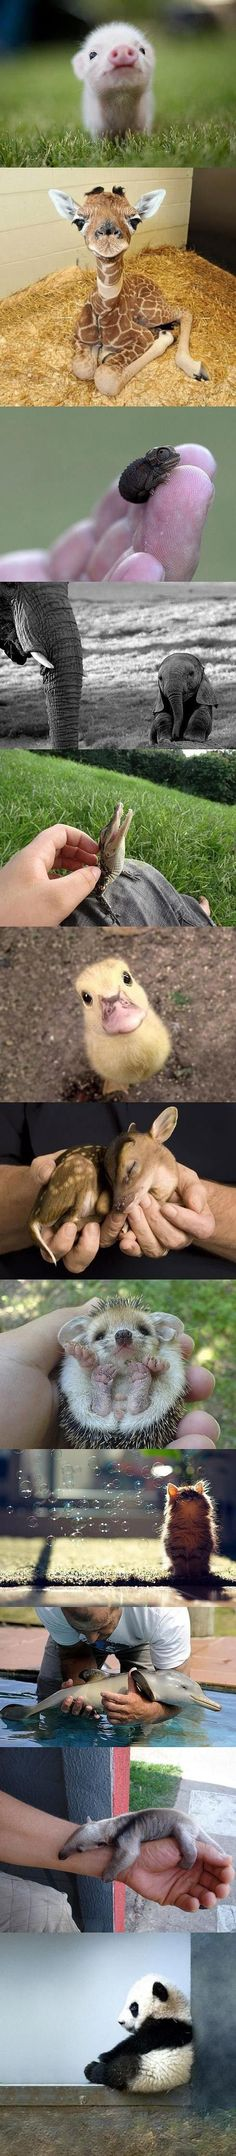 "Aww! Super Tiny Baby Animals  originally pinned via <a href=""https://www.www.www.pinterest.comalararox"" rel=""nofollow"" target=""_blank"">www.www.pinterest.com...</a>"